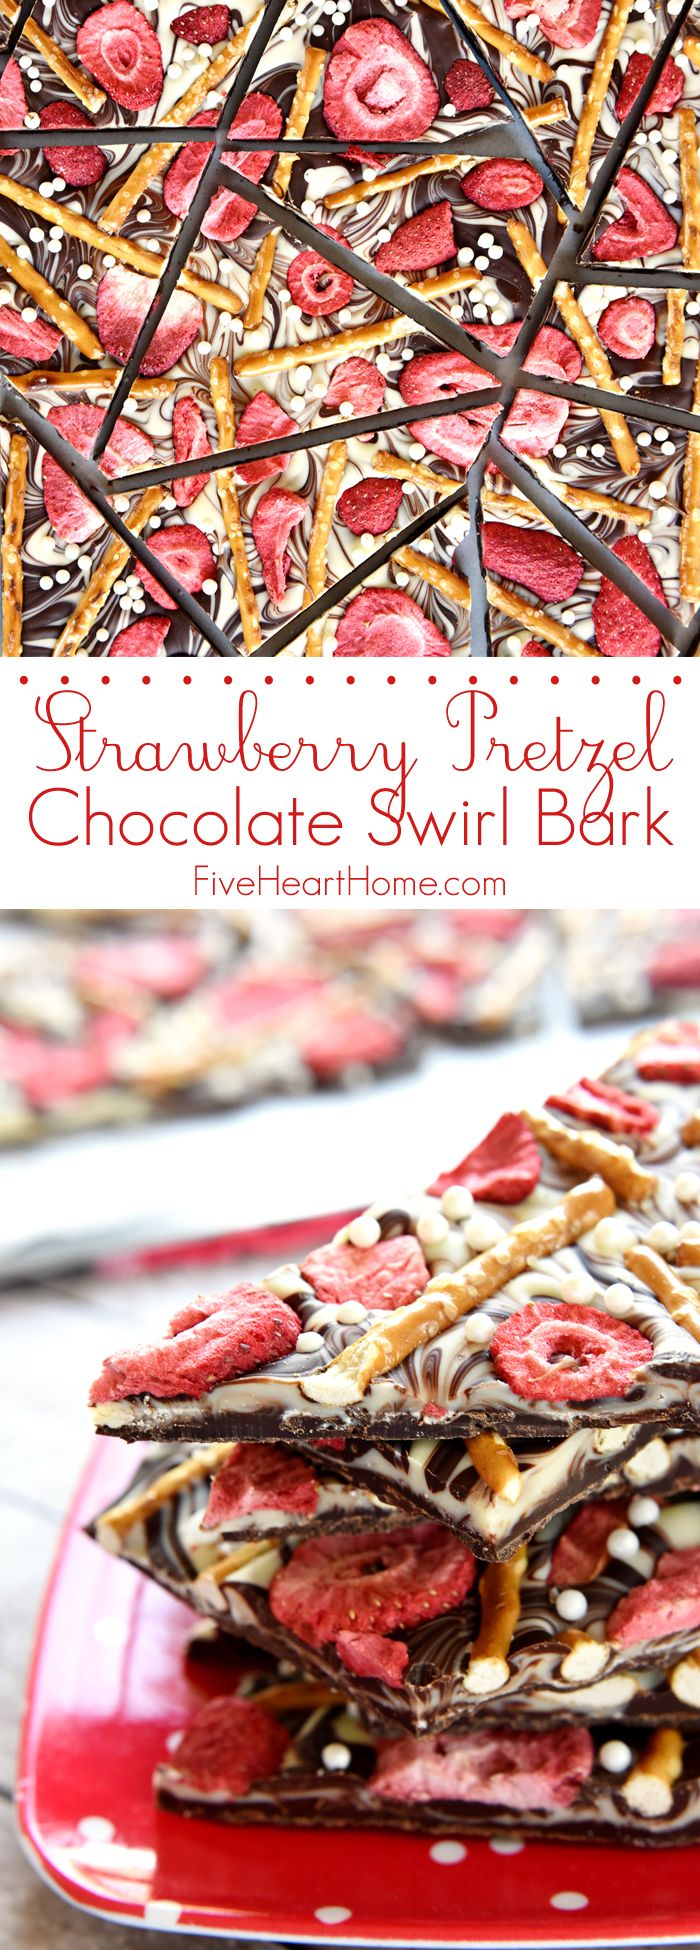 Strawberry Pretzel Chocolate Swirl Bark FoodBlogs.com